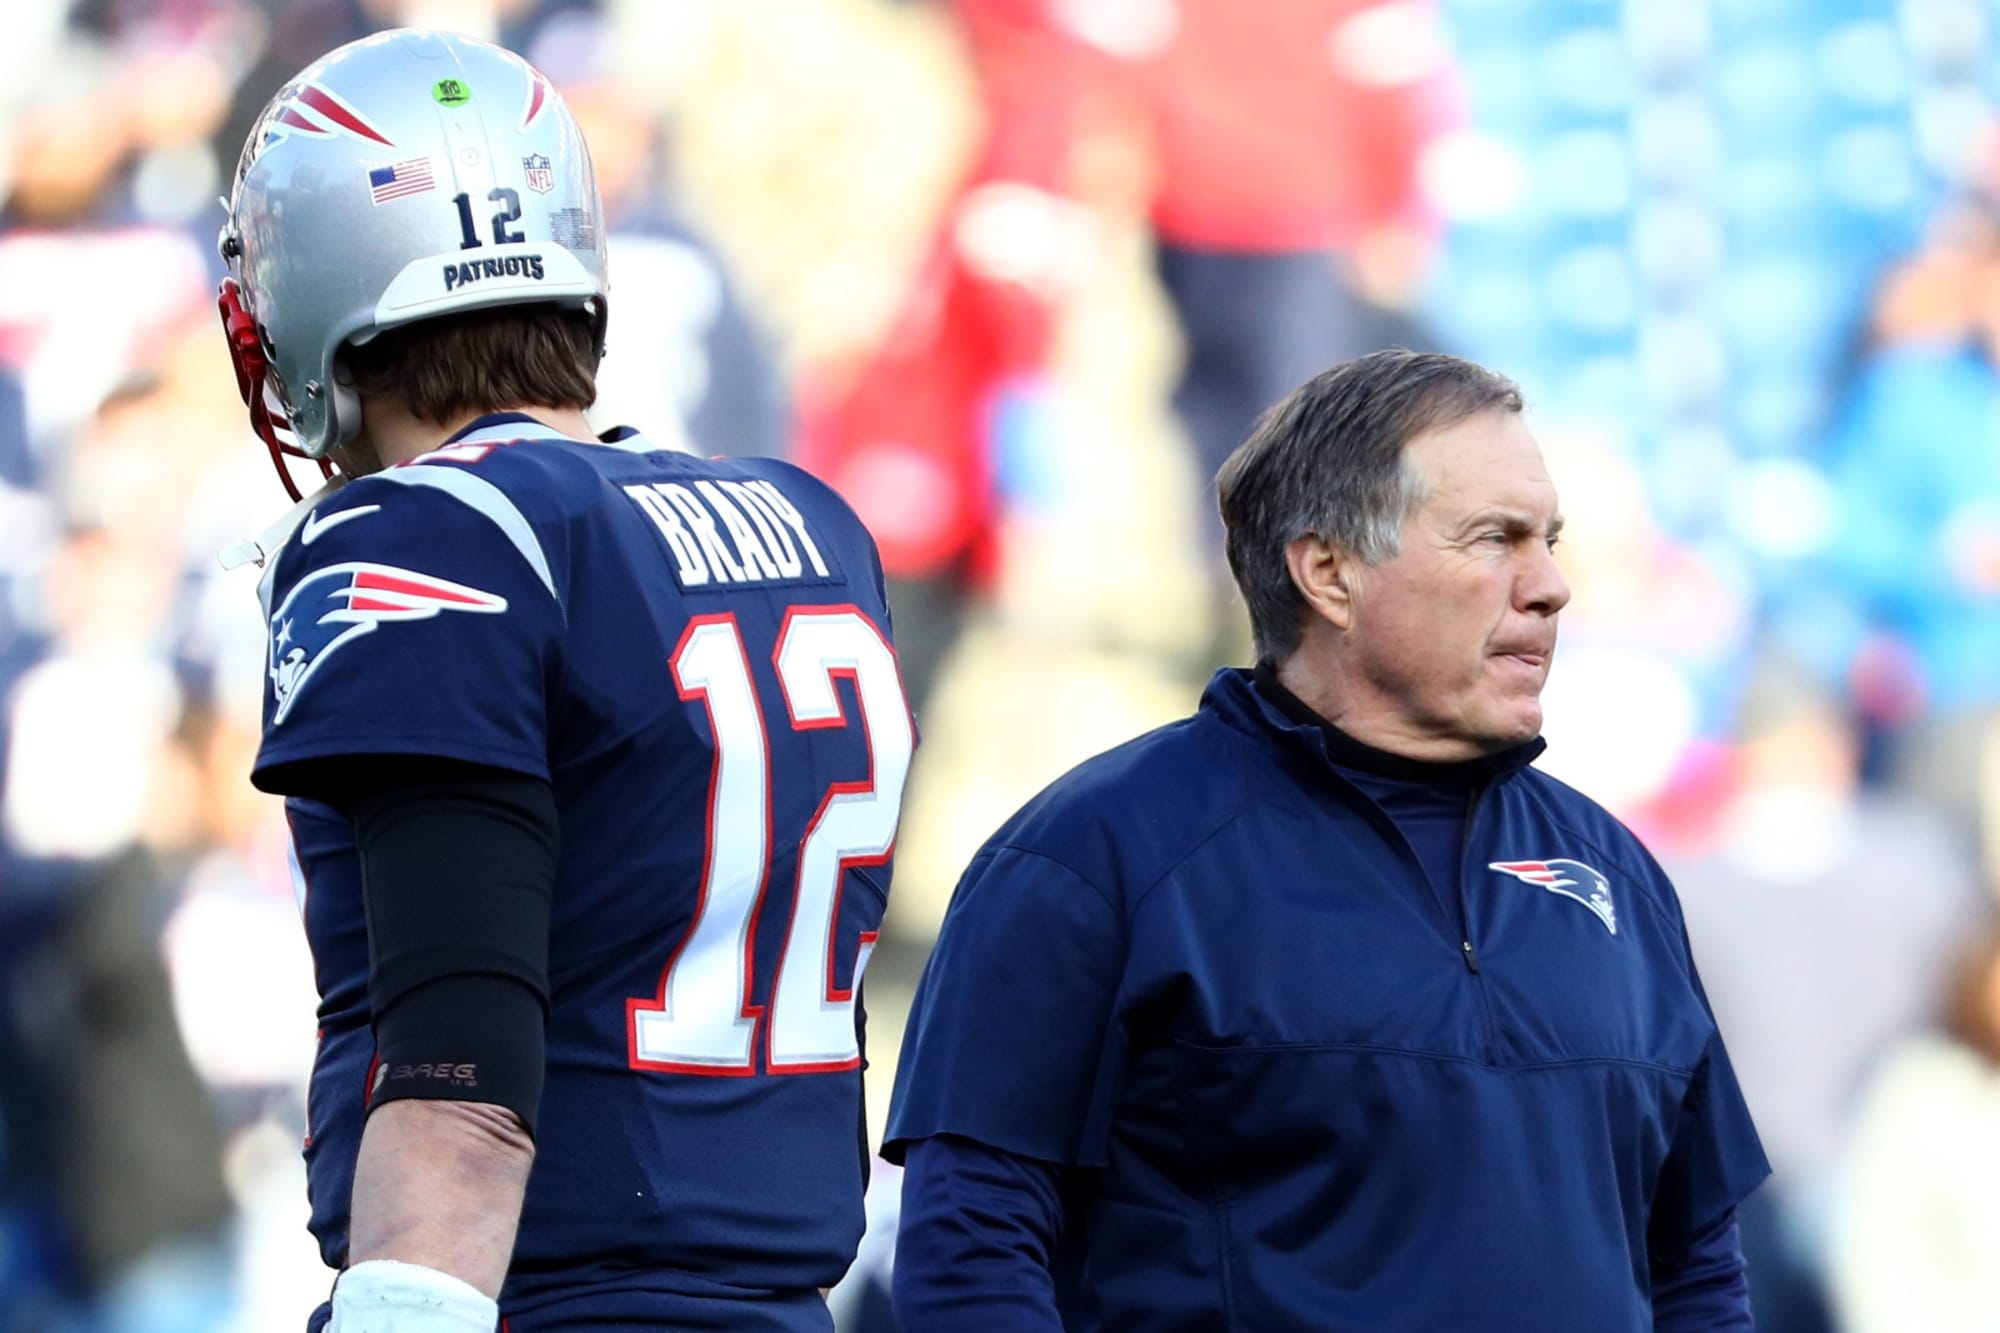 New audio reveals details of Tom Brady and Bill Belichick friction